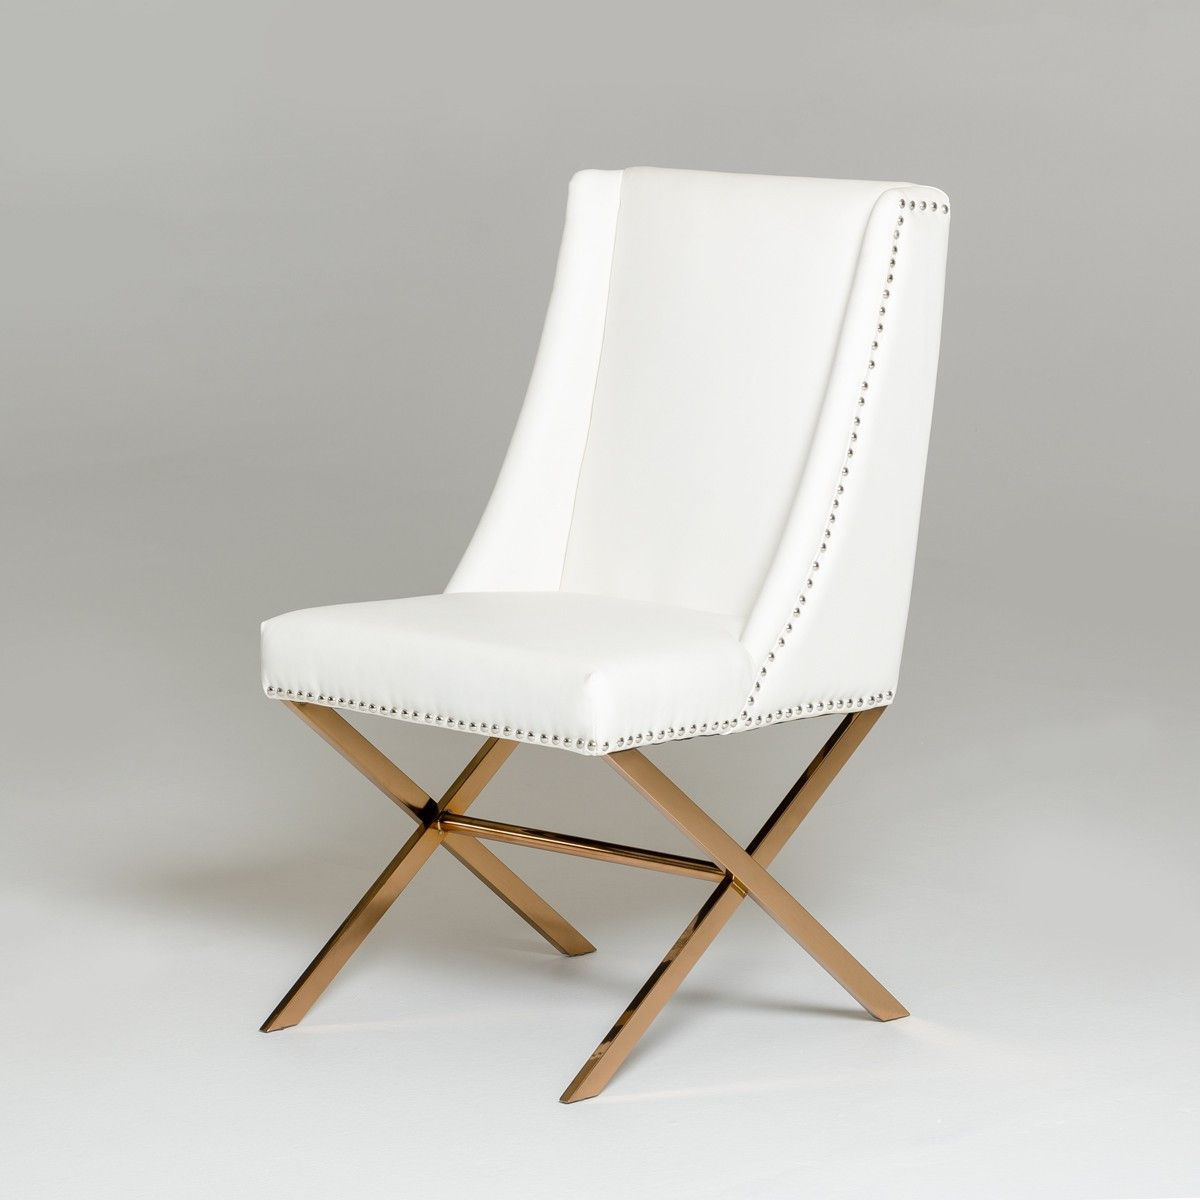 modern white u0026 rose gold dining chair showcases elegance upholstered in silkysmooth white leatherette